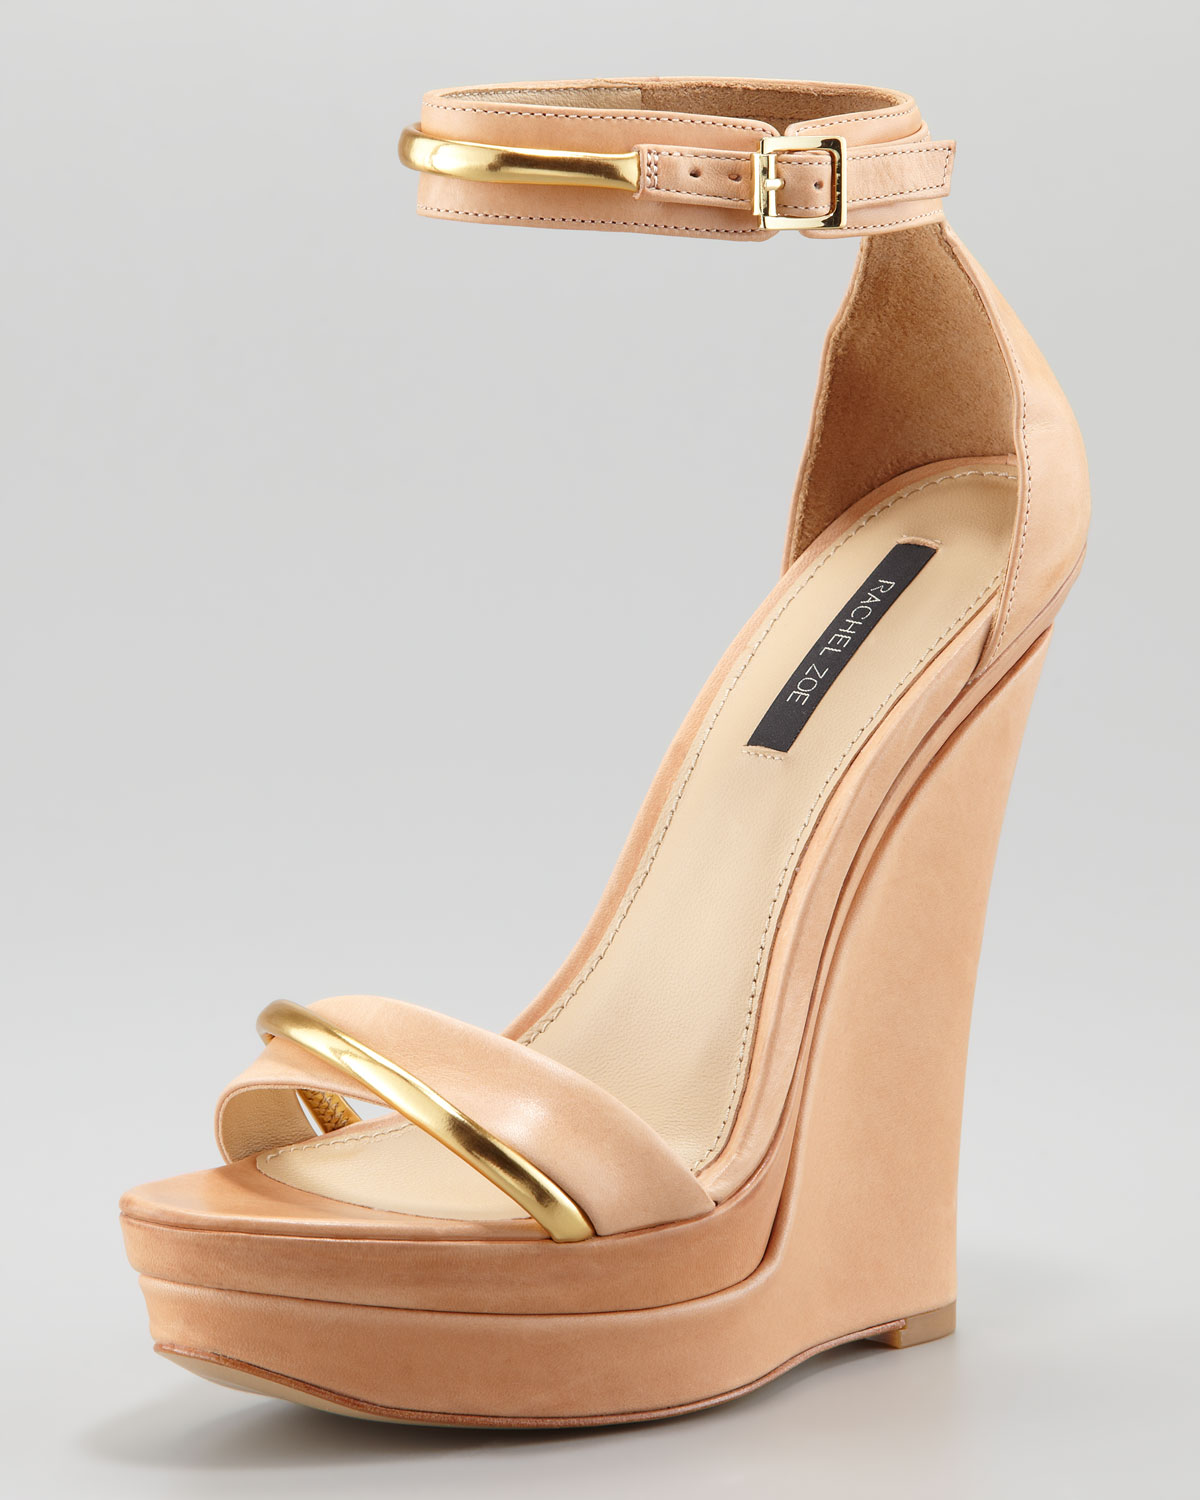 27b0ee7618d8 Lyst - Rachel Zoe Katlyn Wedge Sandal in Natural